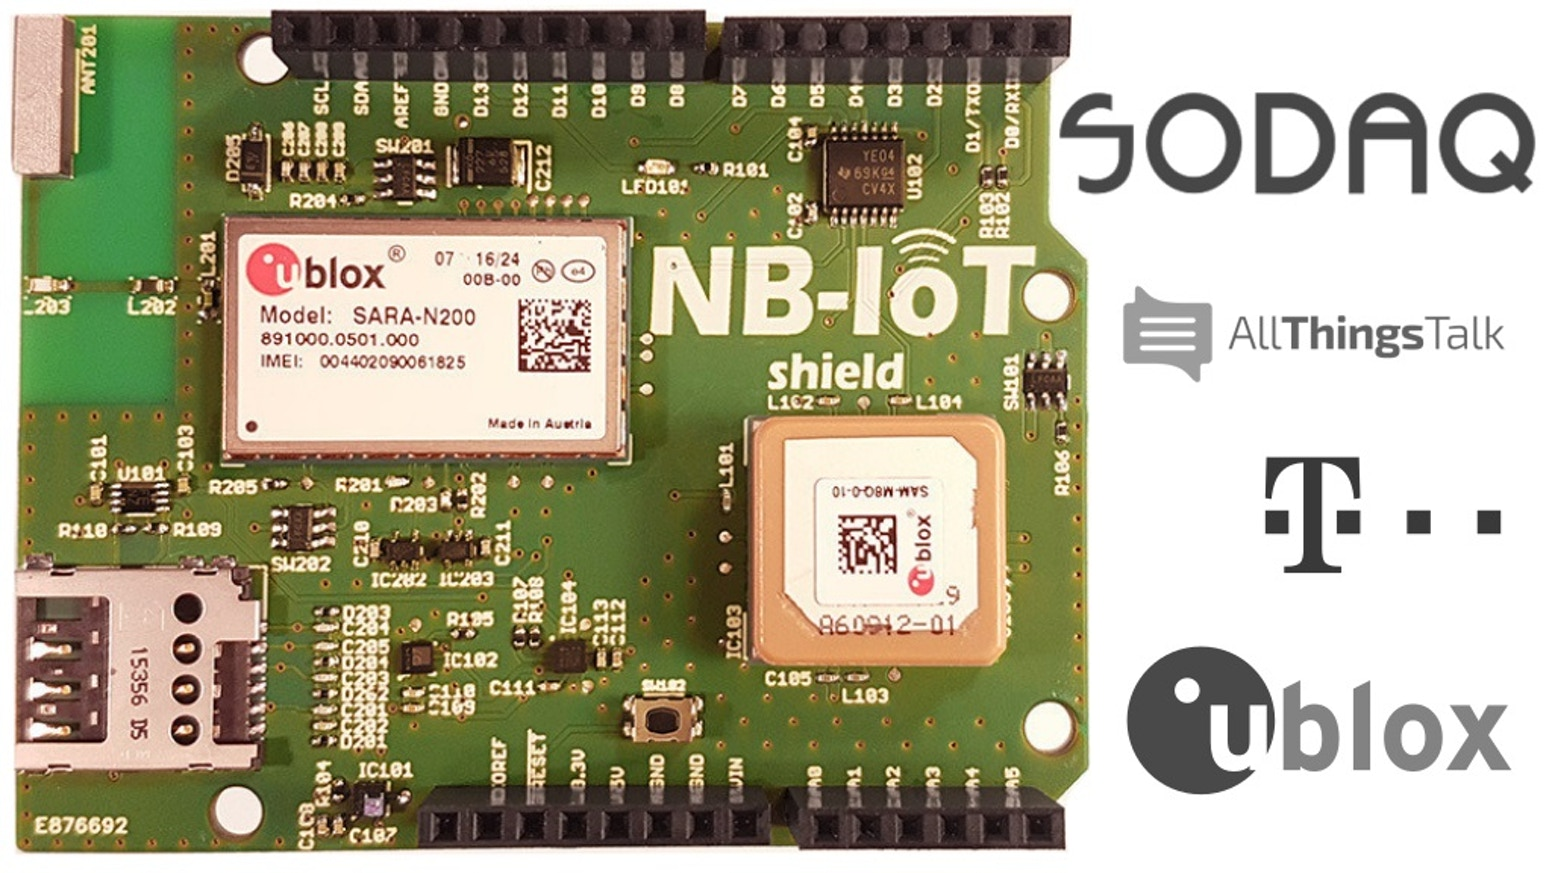 Join the NB-IoT revolution with this Arduino shield, get connected and start using the collected data in no time